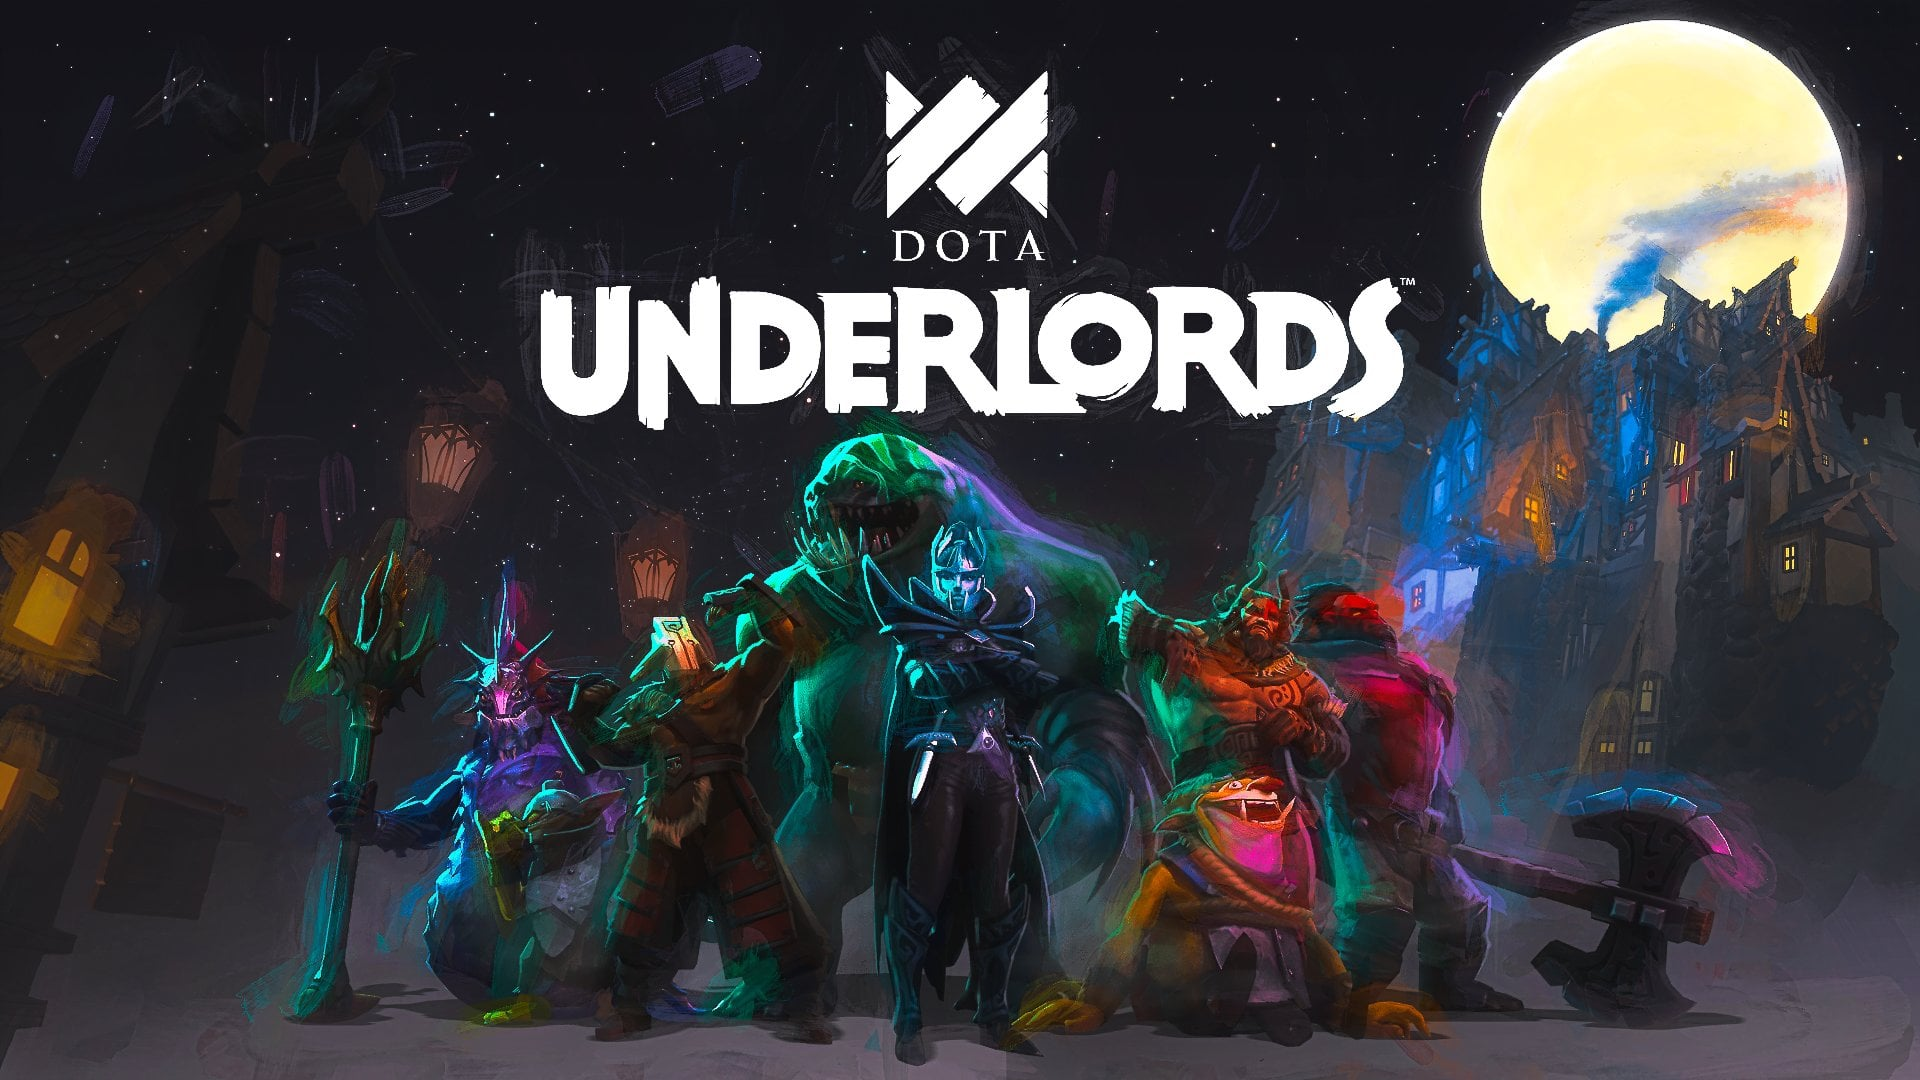 Dota Underlords Wallpaper HD 1